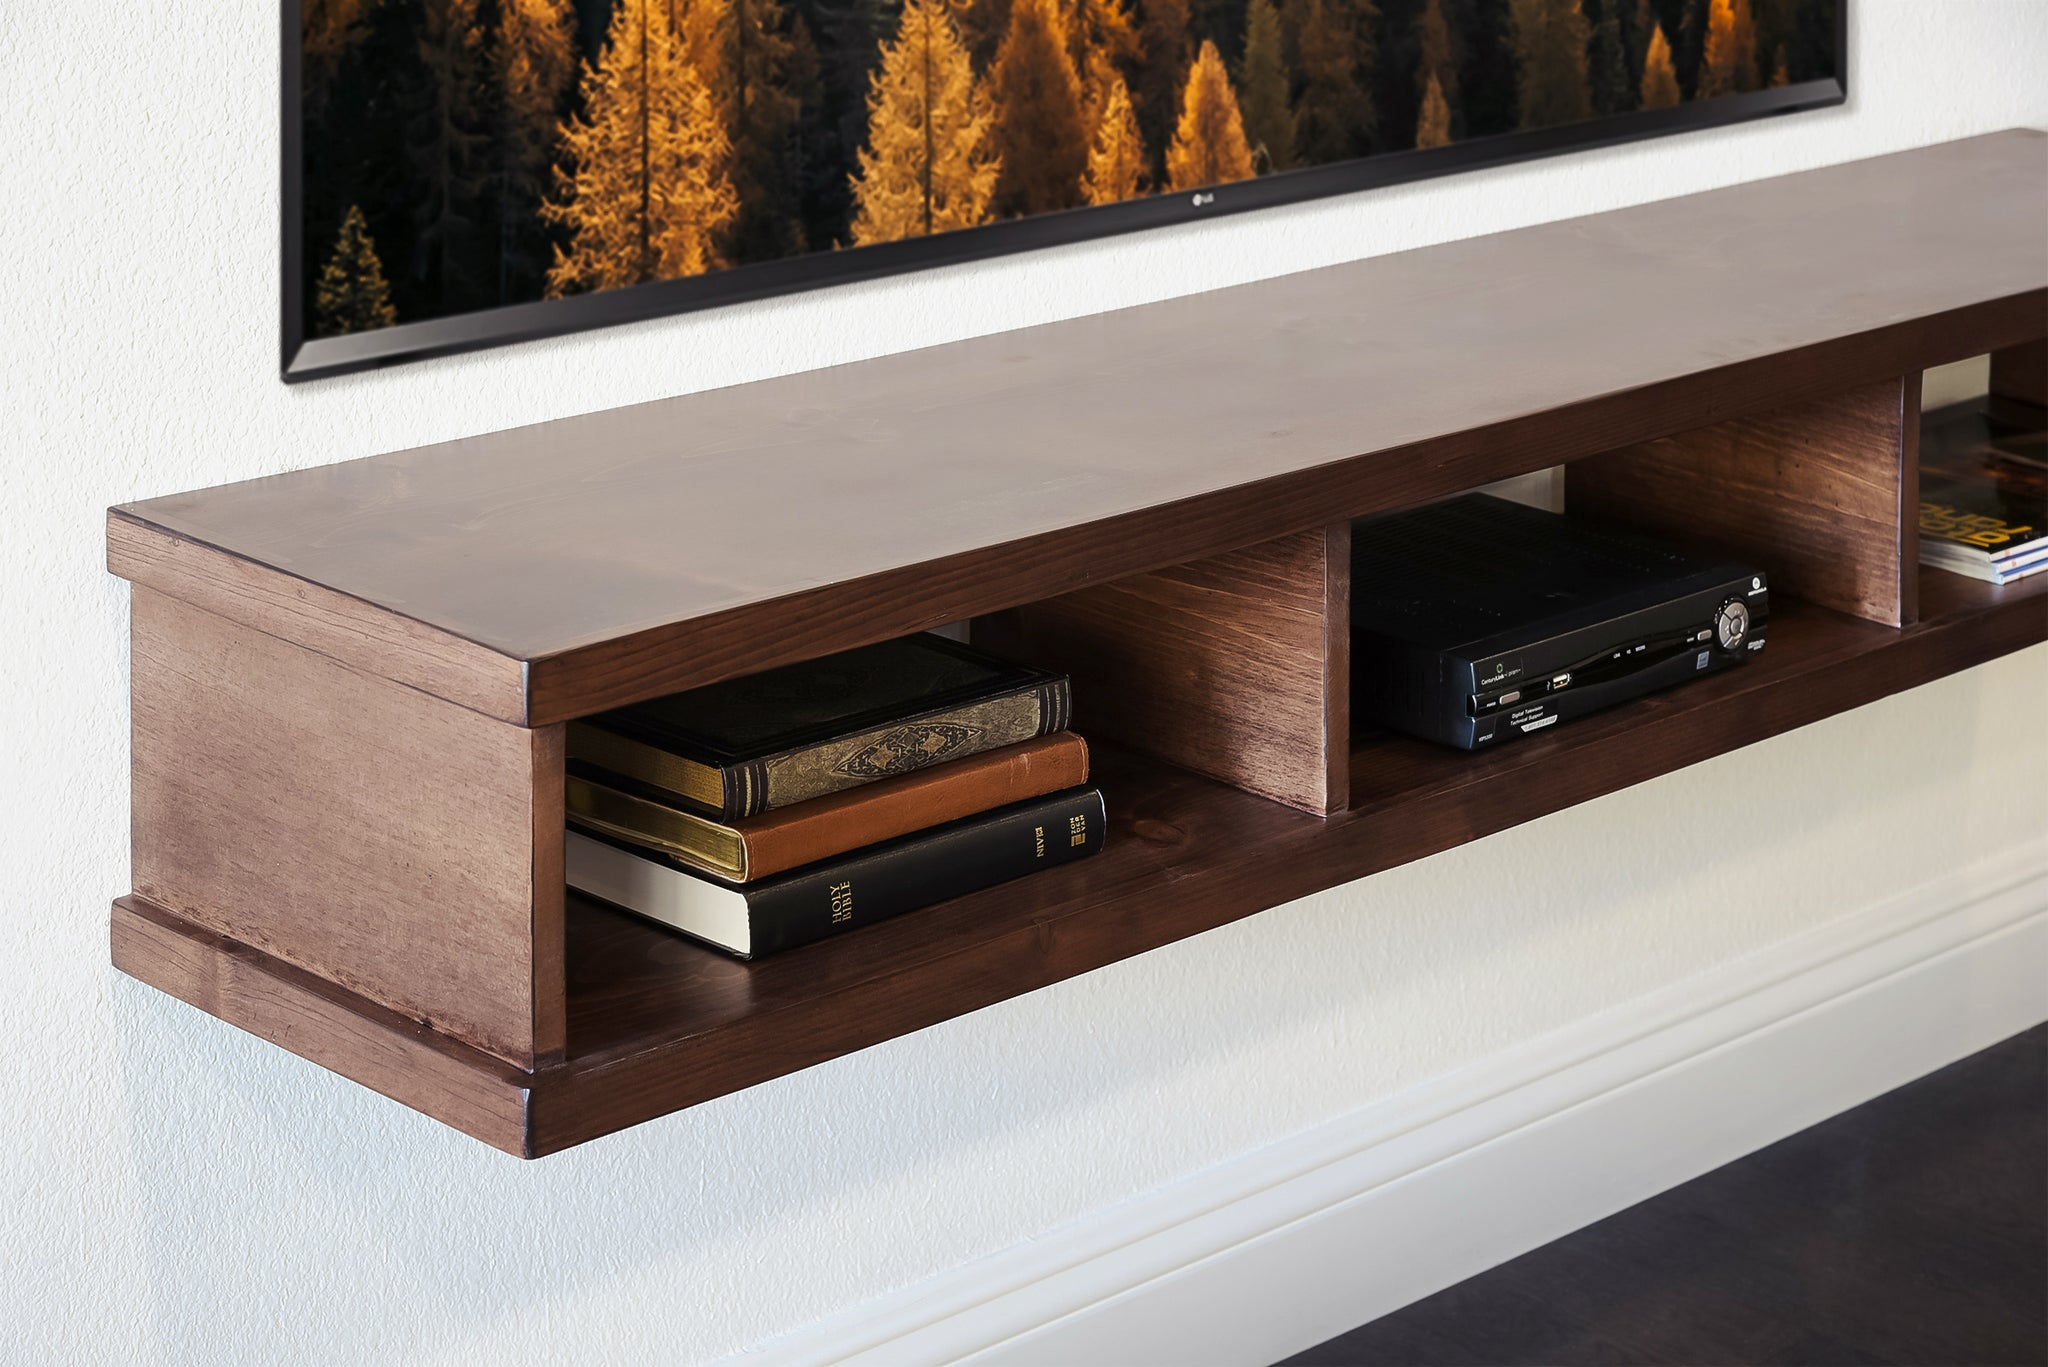 Rustic Solid Wood Floating TV Stand Wall Mount Console - Walnut - Monterey